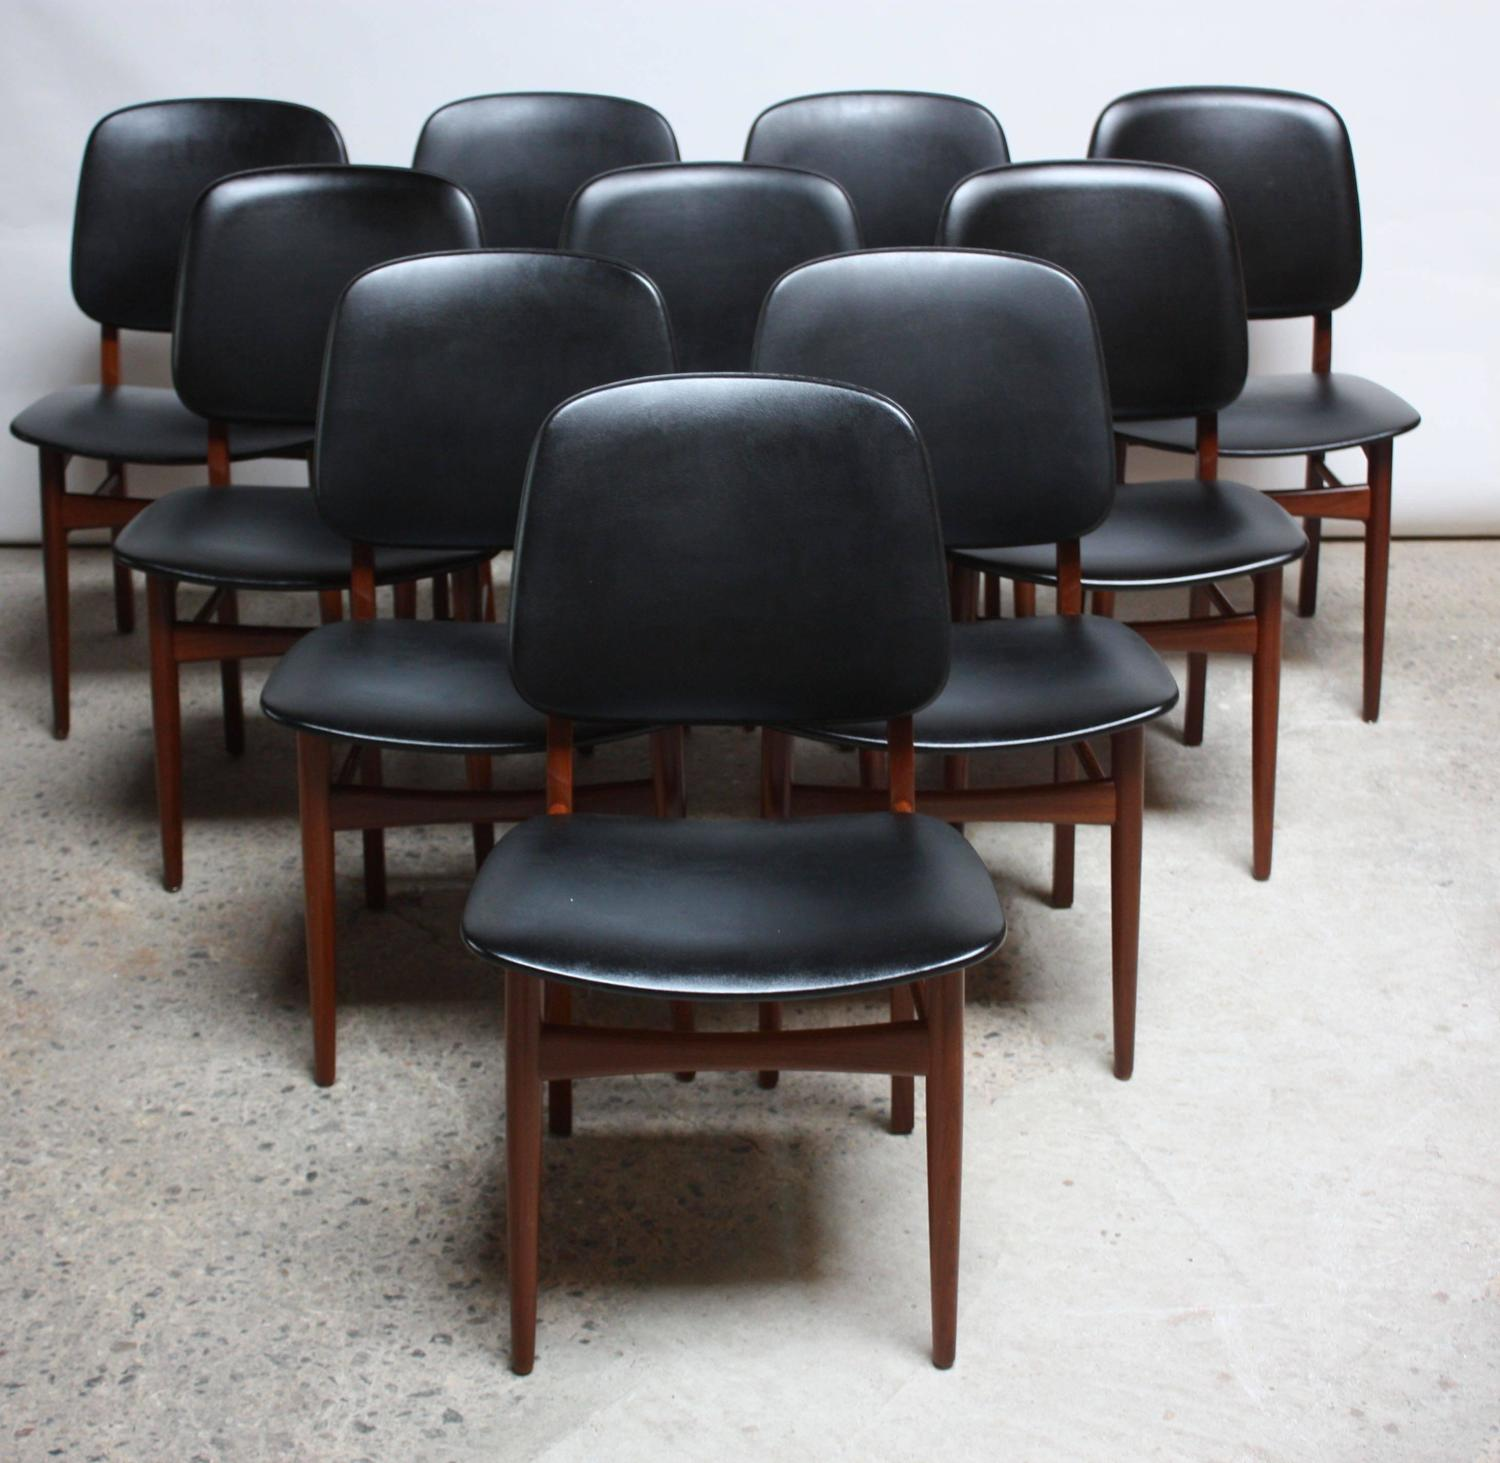 set of ten danish modern dining chairs in teak at 1stdibs